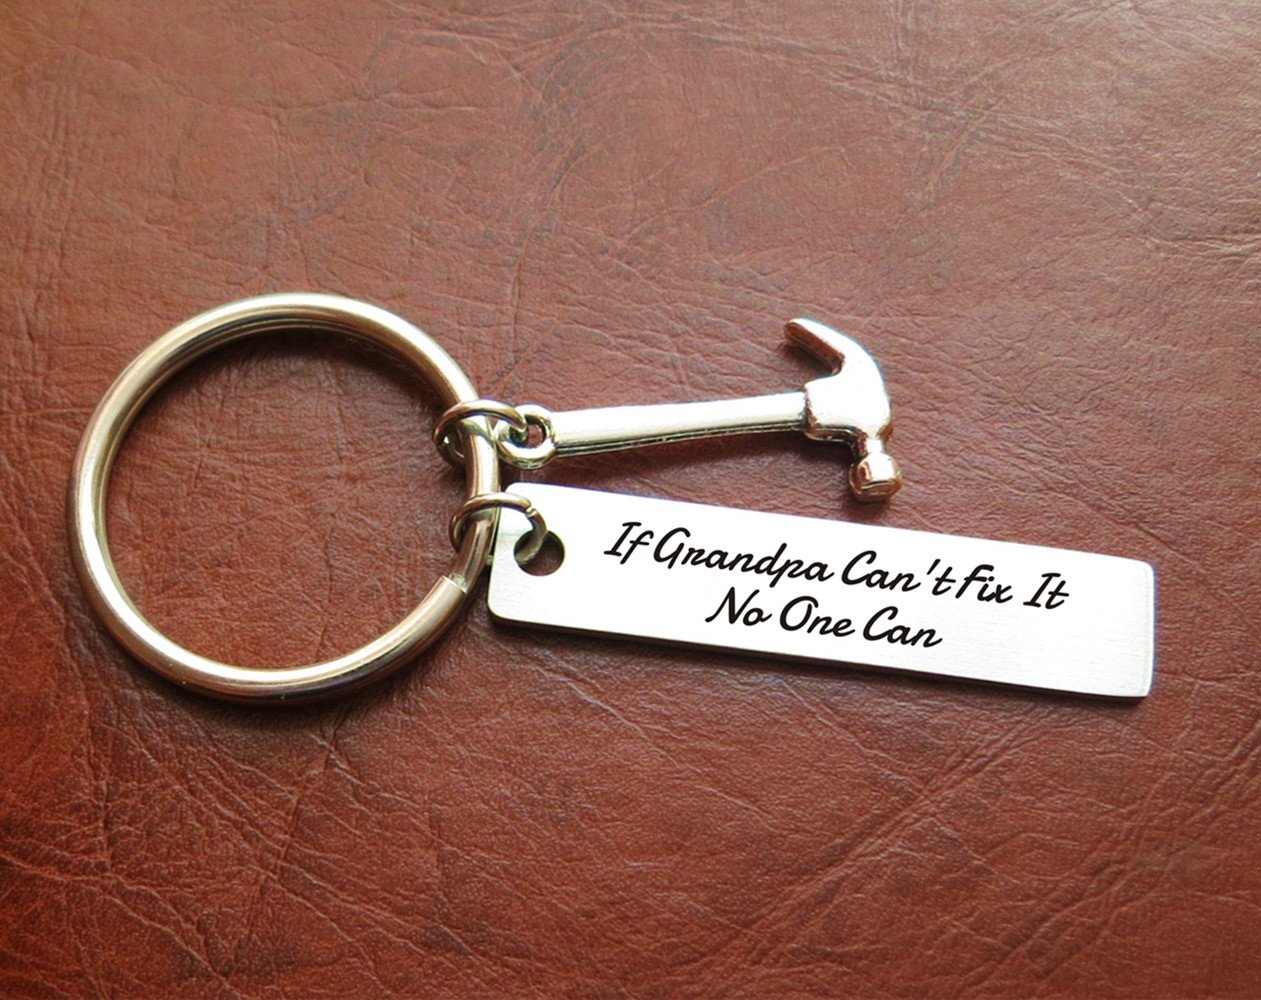 If Grandpa Can't Fix It No One Can - Stainless Steel Hammer Keychains Birthday Christmas Gift For Grandad Father's Day Gifts for Grandpa